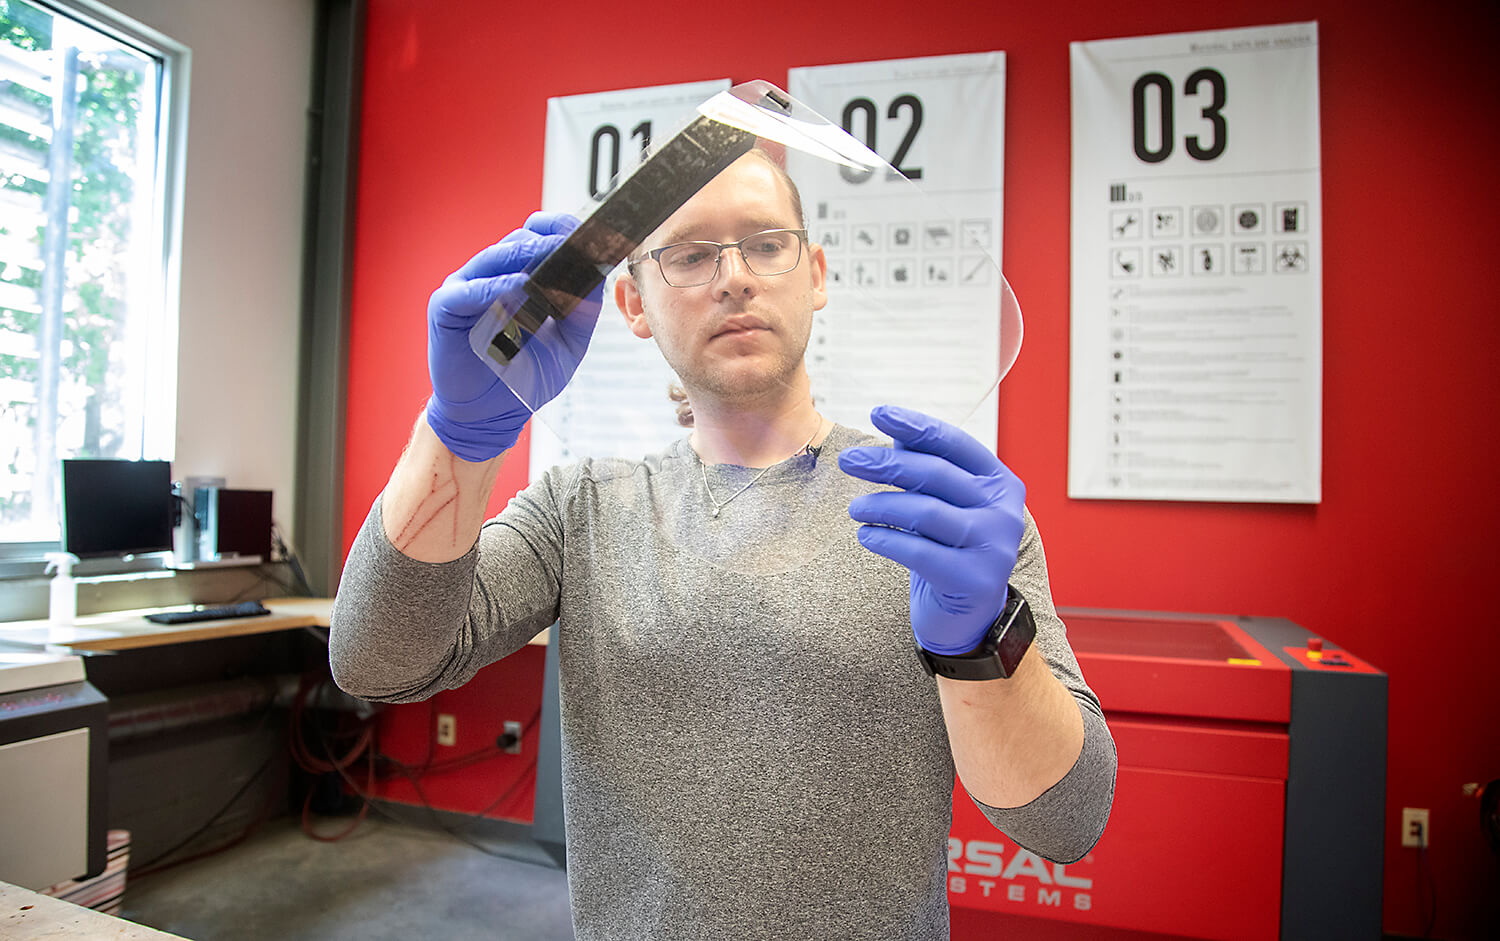 Aaron McEuen, the instructional lab manager of the University of Houston's Burdette Keeland Jr. Design Exploration Lab, examines one of the face shields his lab manufactured for Harris Health System.